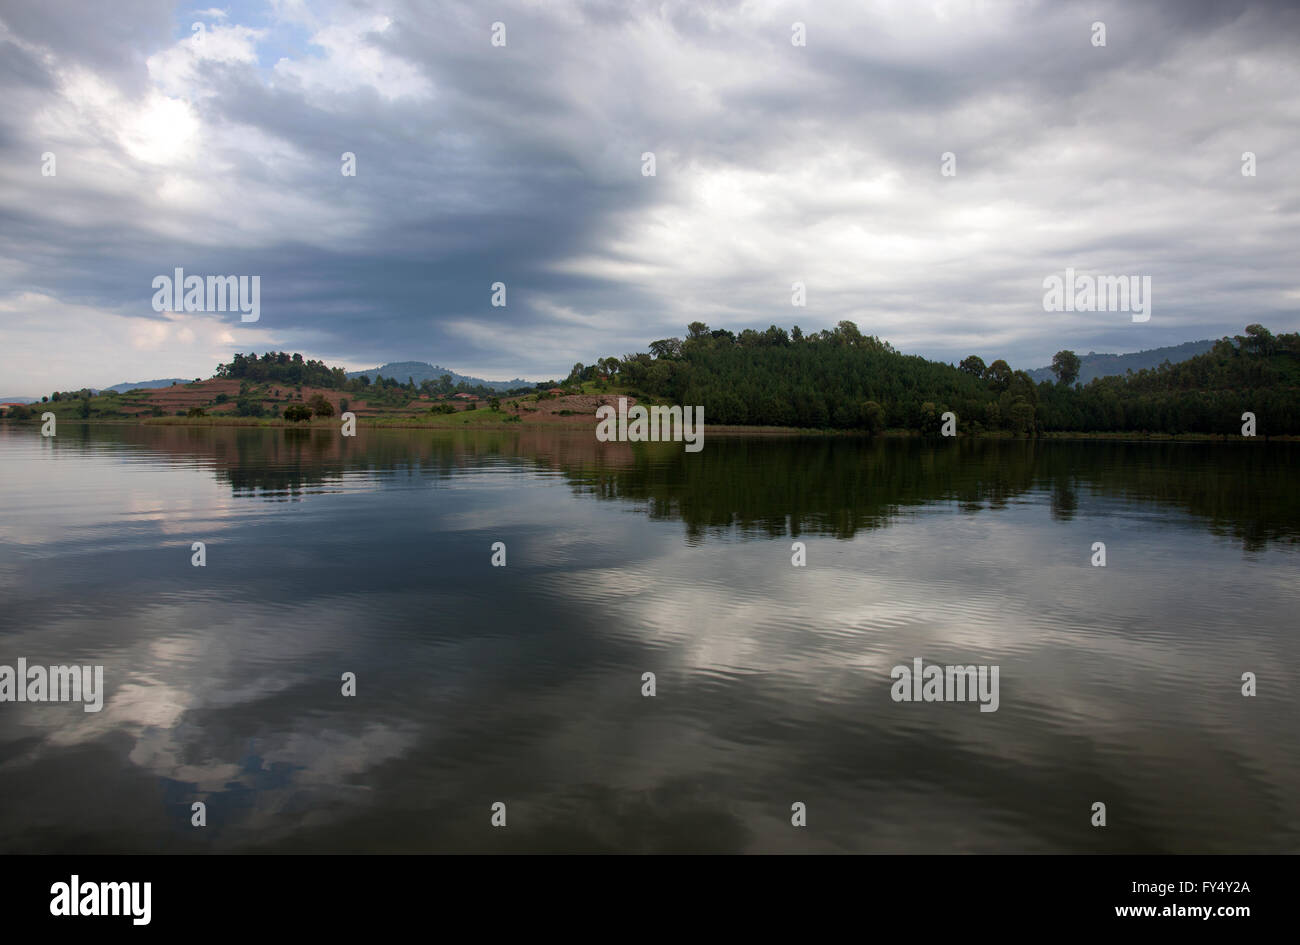 Photograph by © Jamie Callister. Lake Bunyonyi, South Uganda, Central Africa, 4th of March 2016 - Stock Image